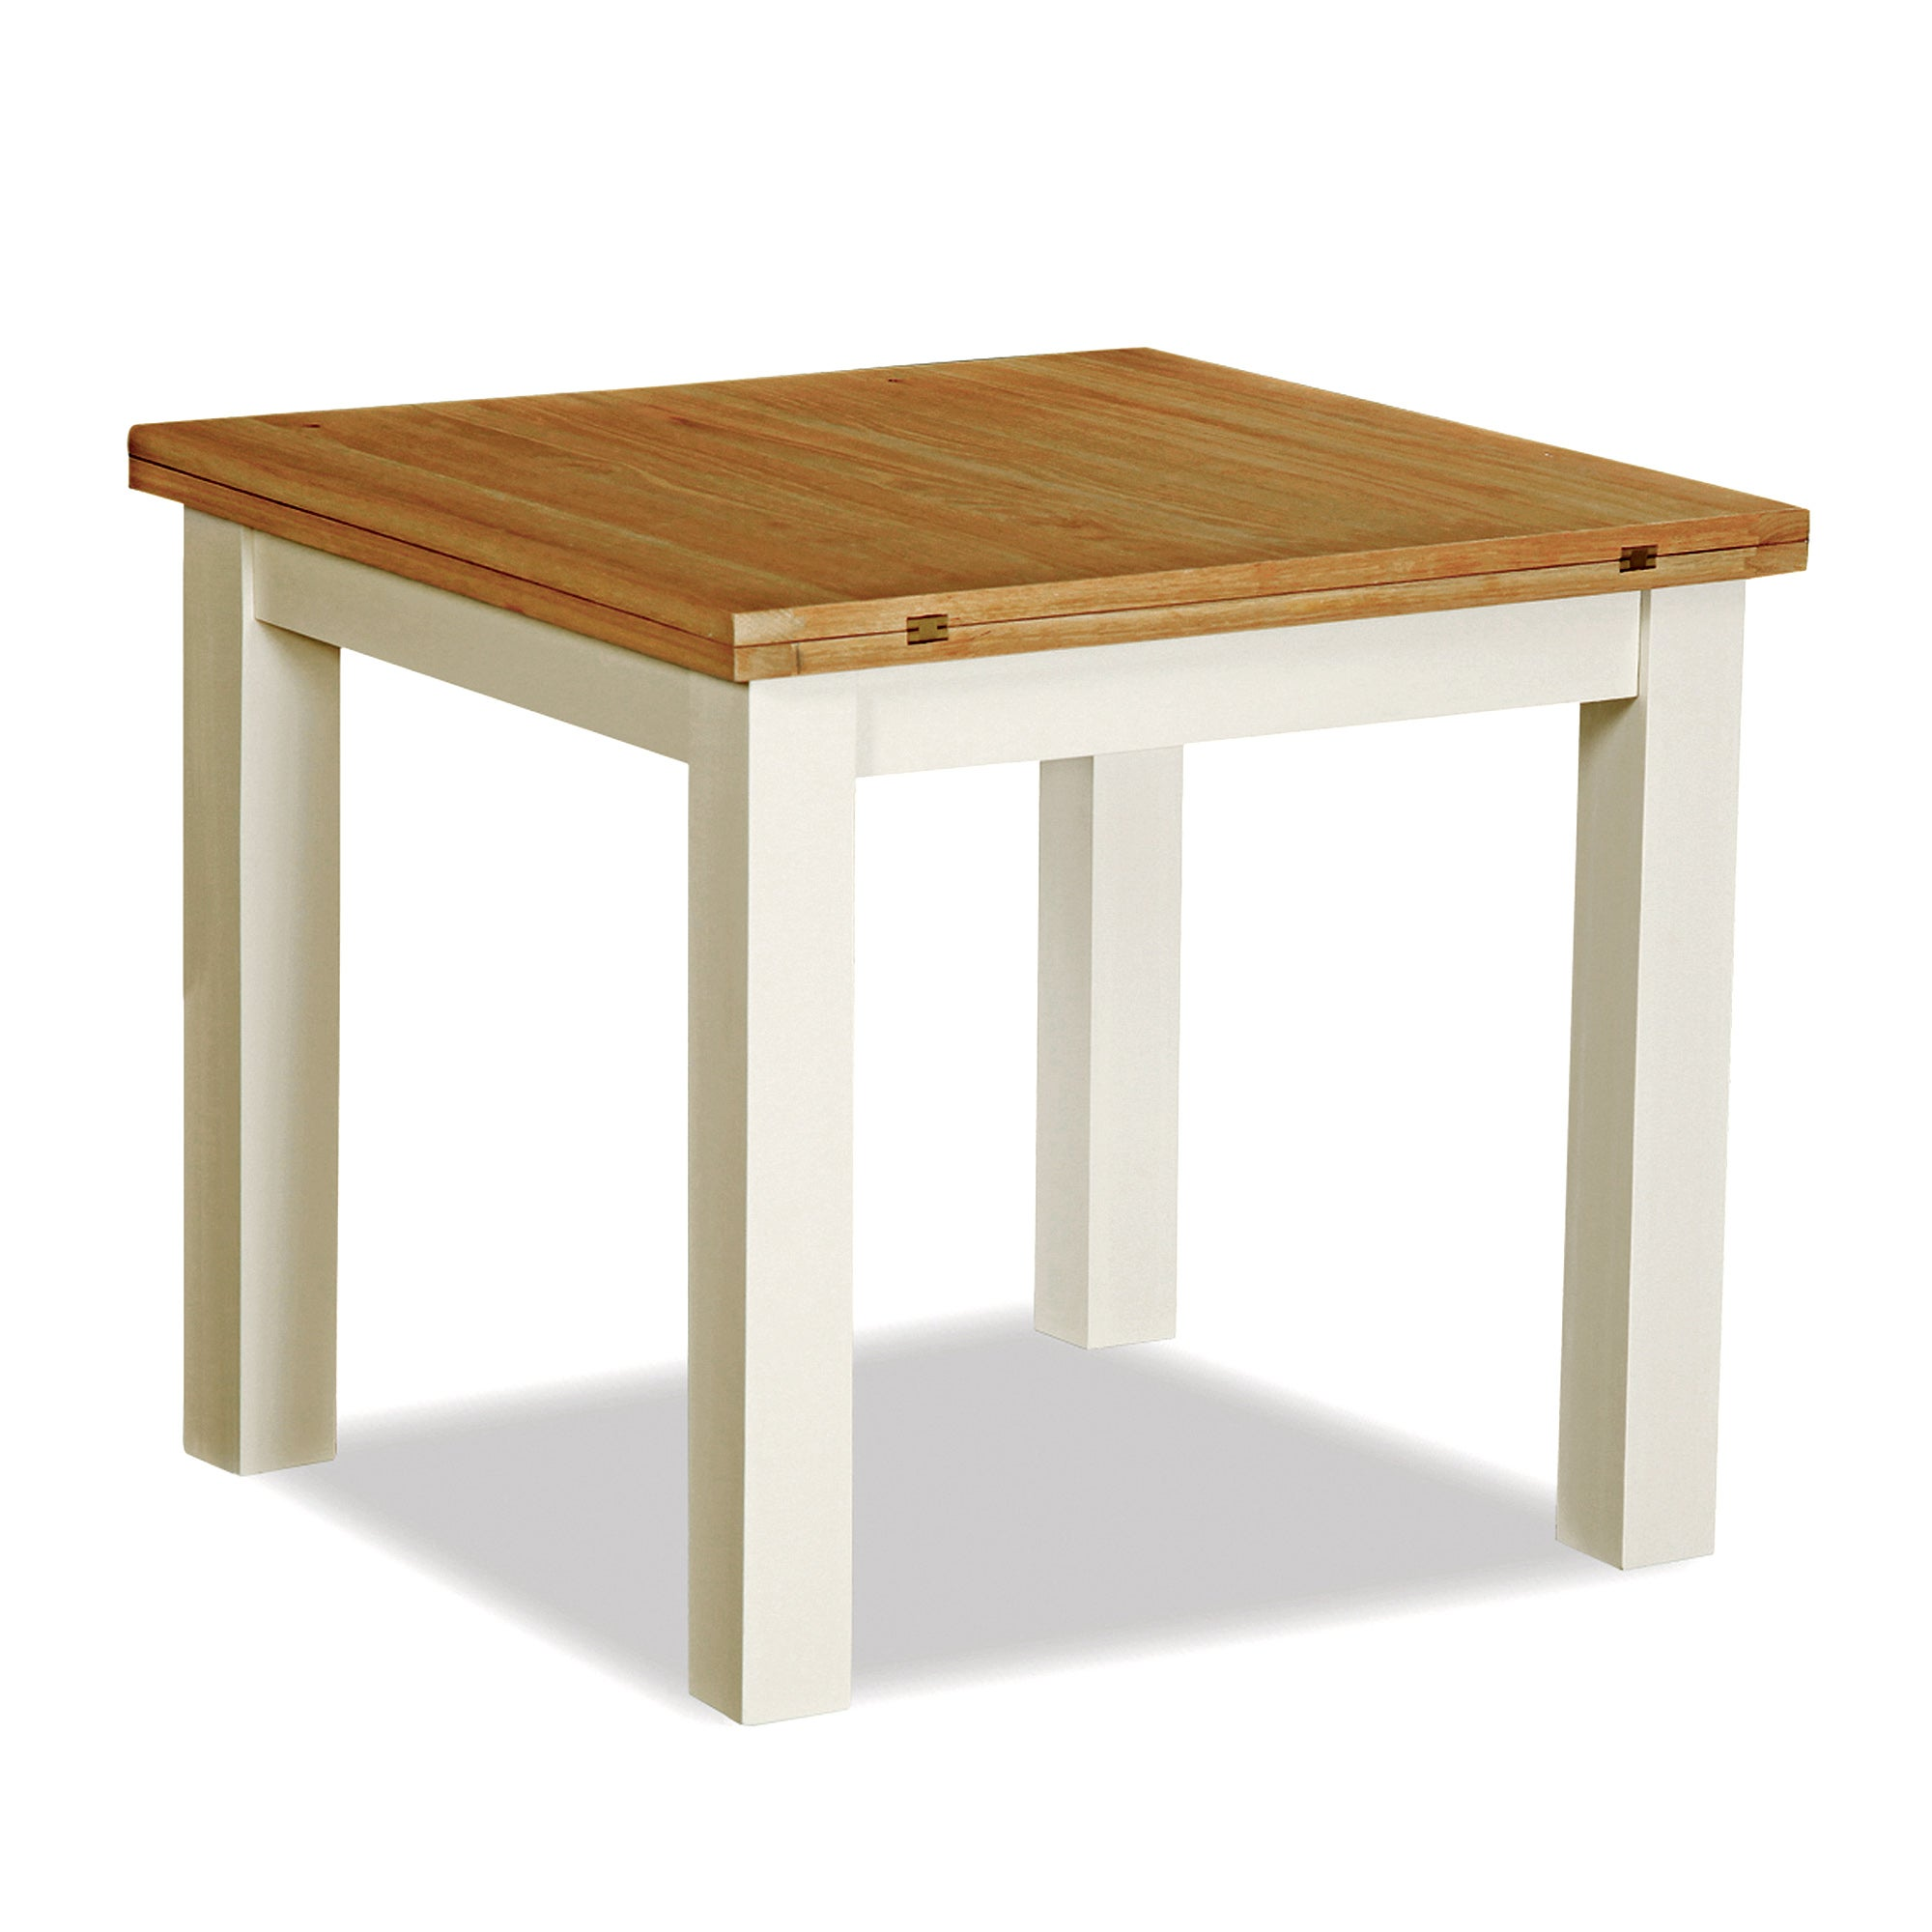 Truro Oak Square Extending Dining Table